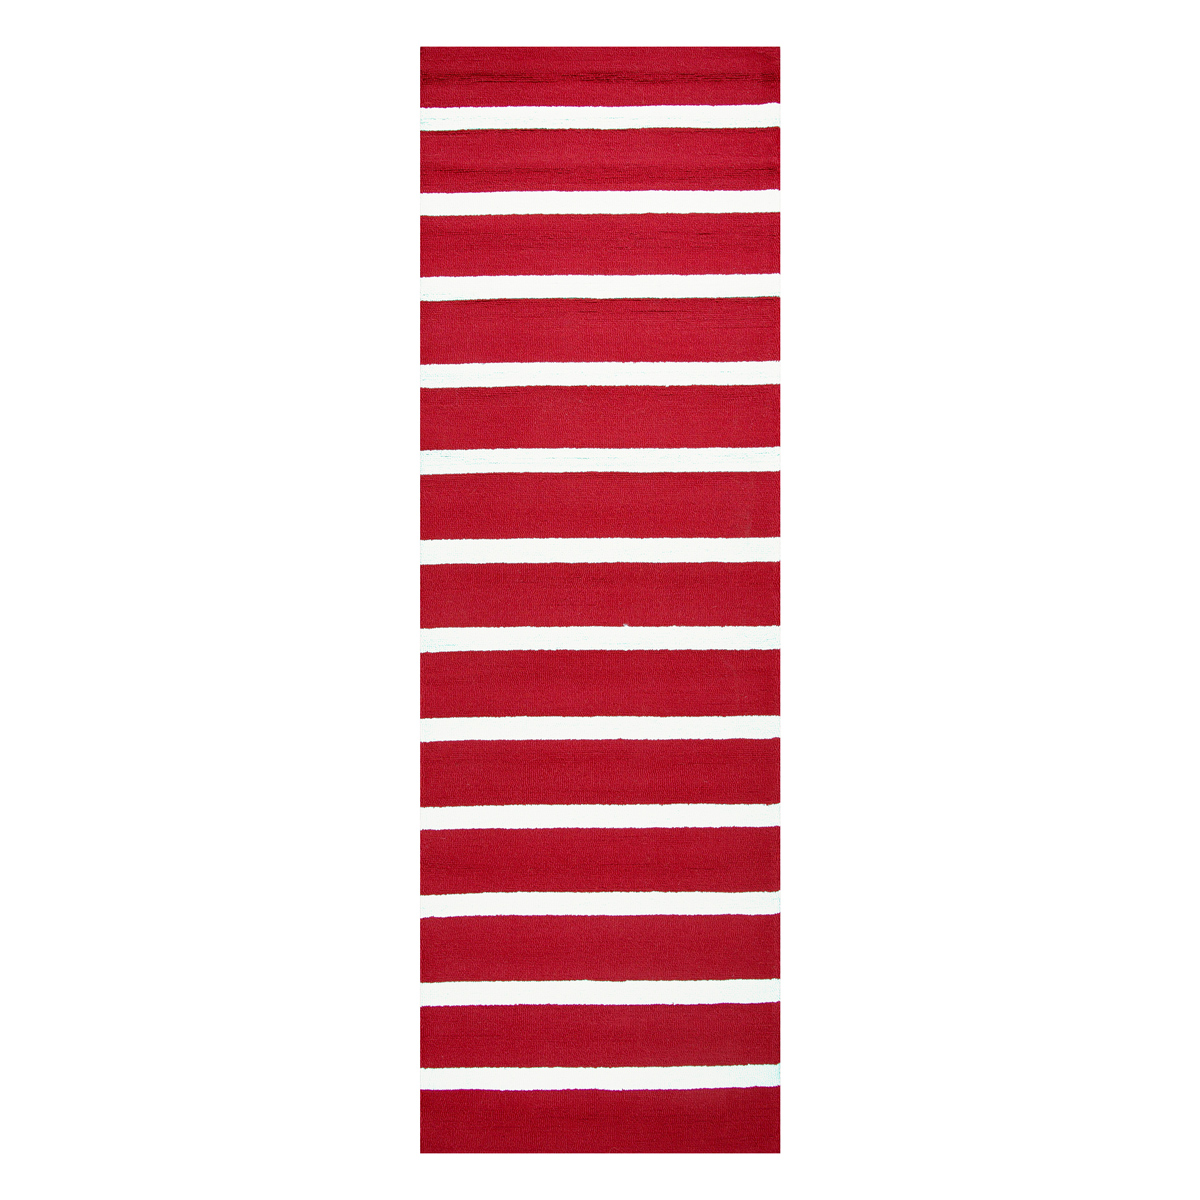 Nautical Area Rugs 3 X 8 Boardwalk Scarlet Red Striped Rug